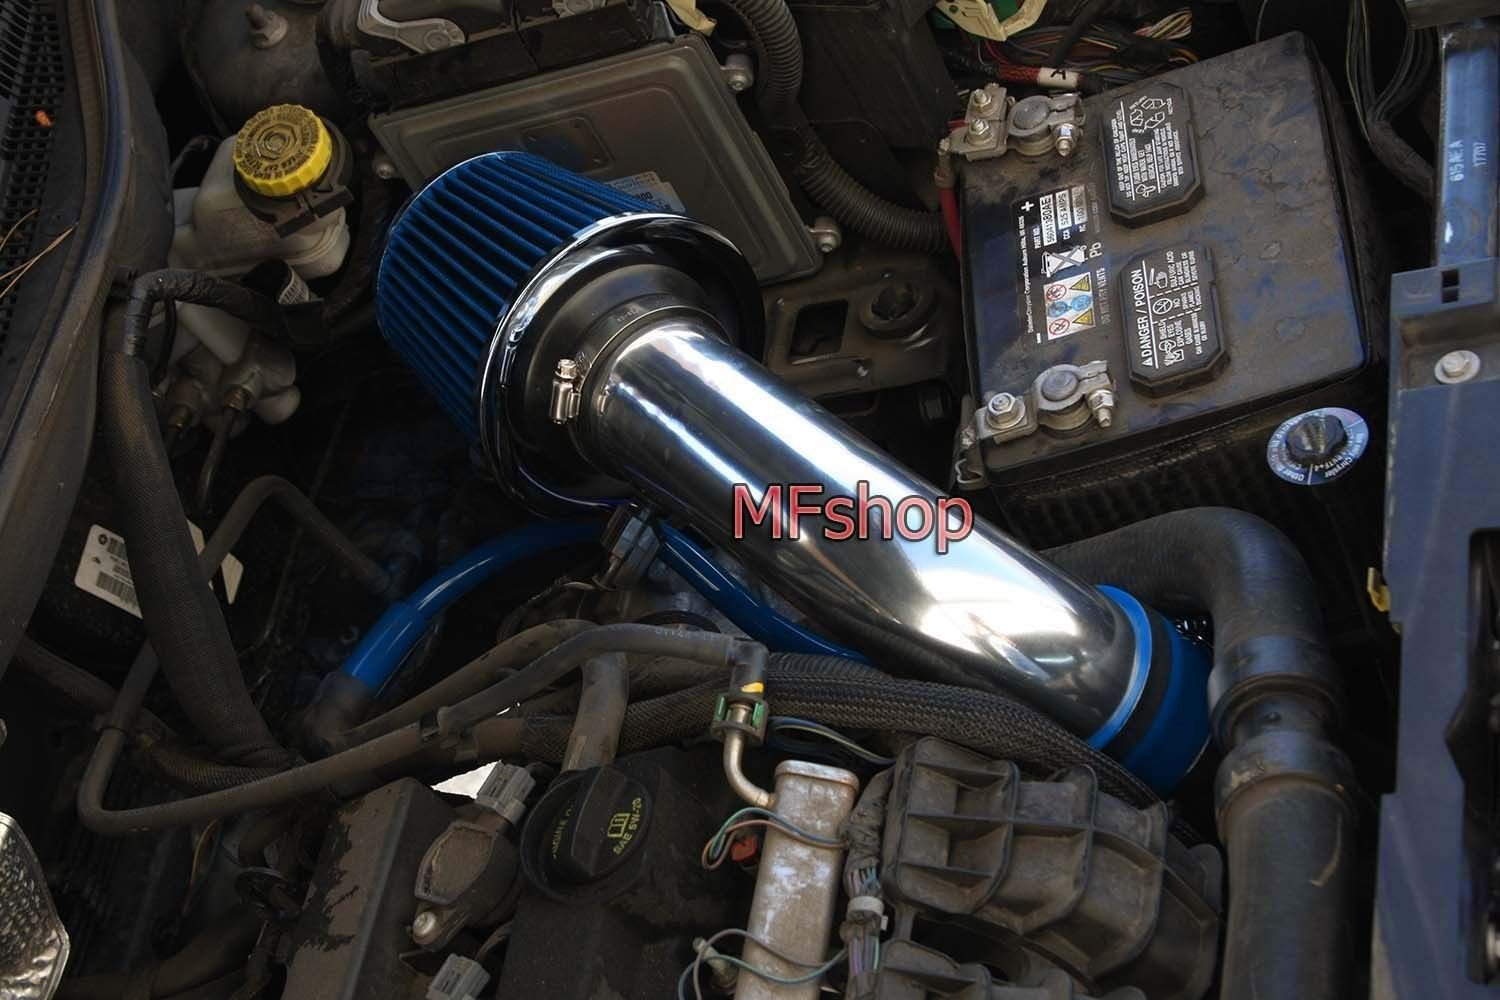 Amazon.com: 2007 2008 2009 2010 Dodge Caliber 1.8L 2.0L 2.4L SE SXT R/T  Express Air Intake Filter Kit System (Blue Filter & Accessories): Automotive